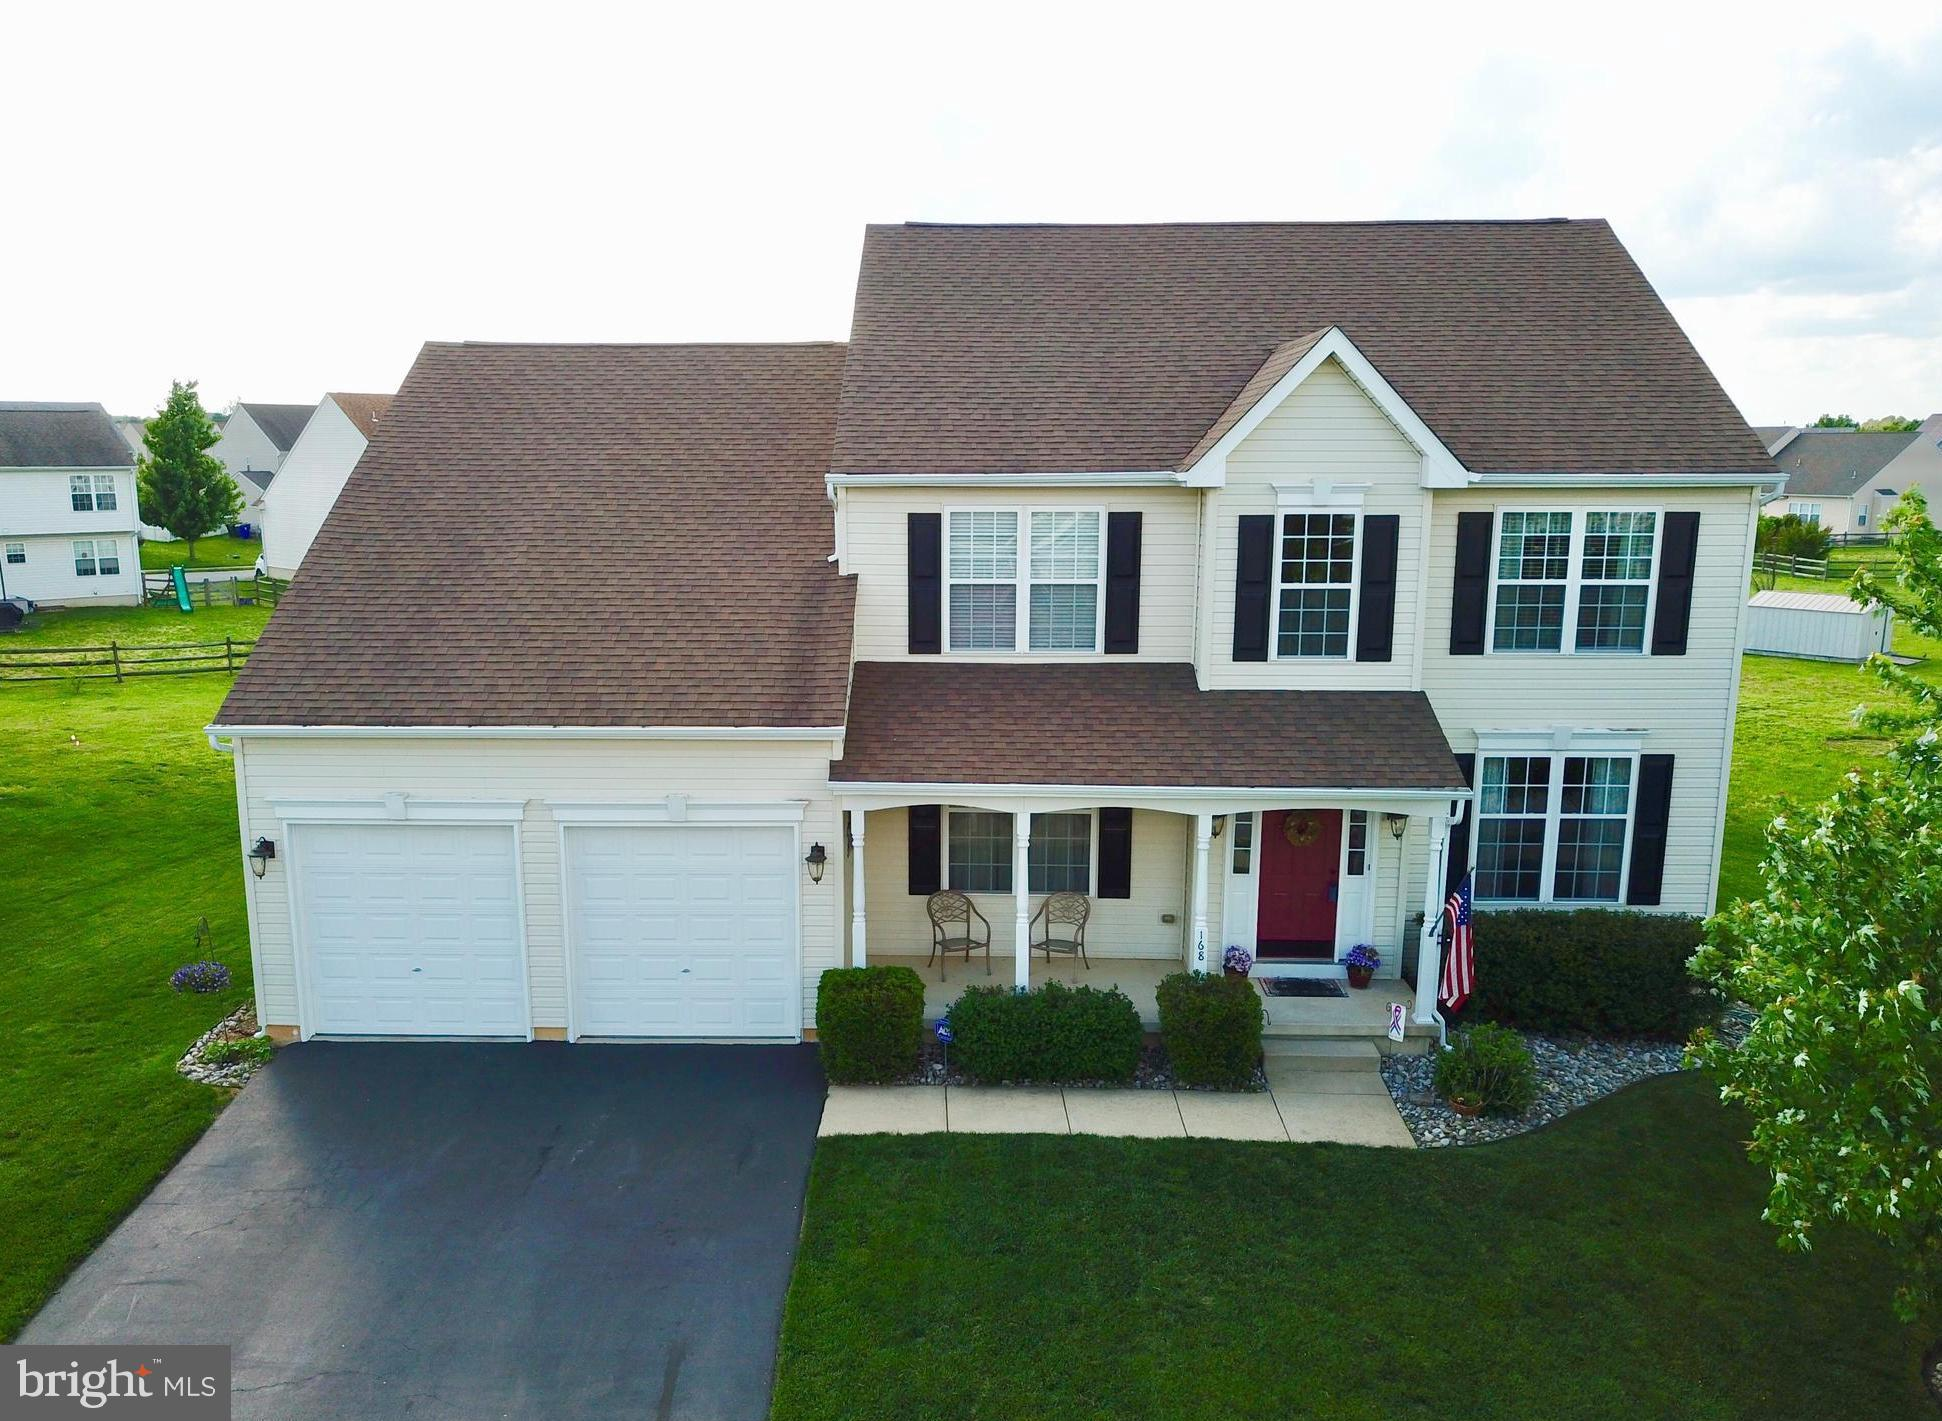 168 CHESAPEAKE LANE, CLAYTON, DE 19938